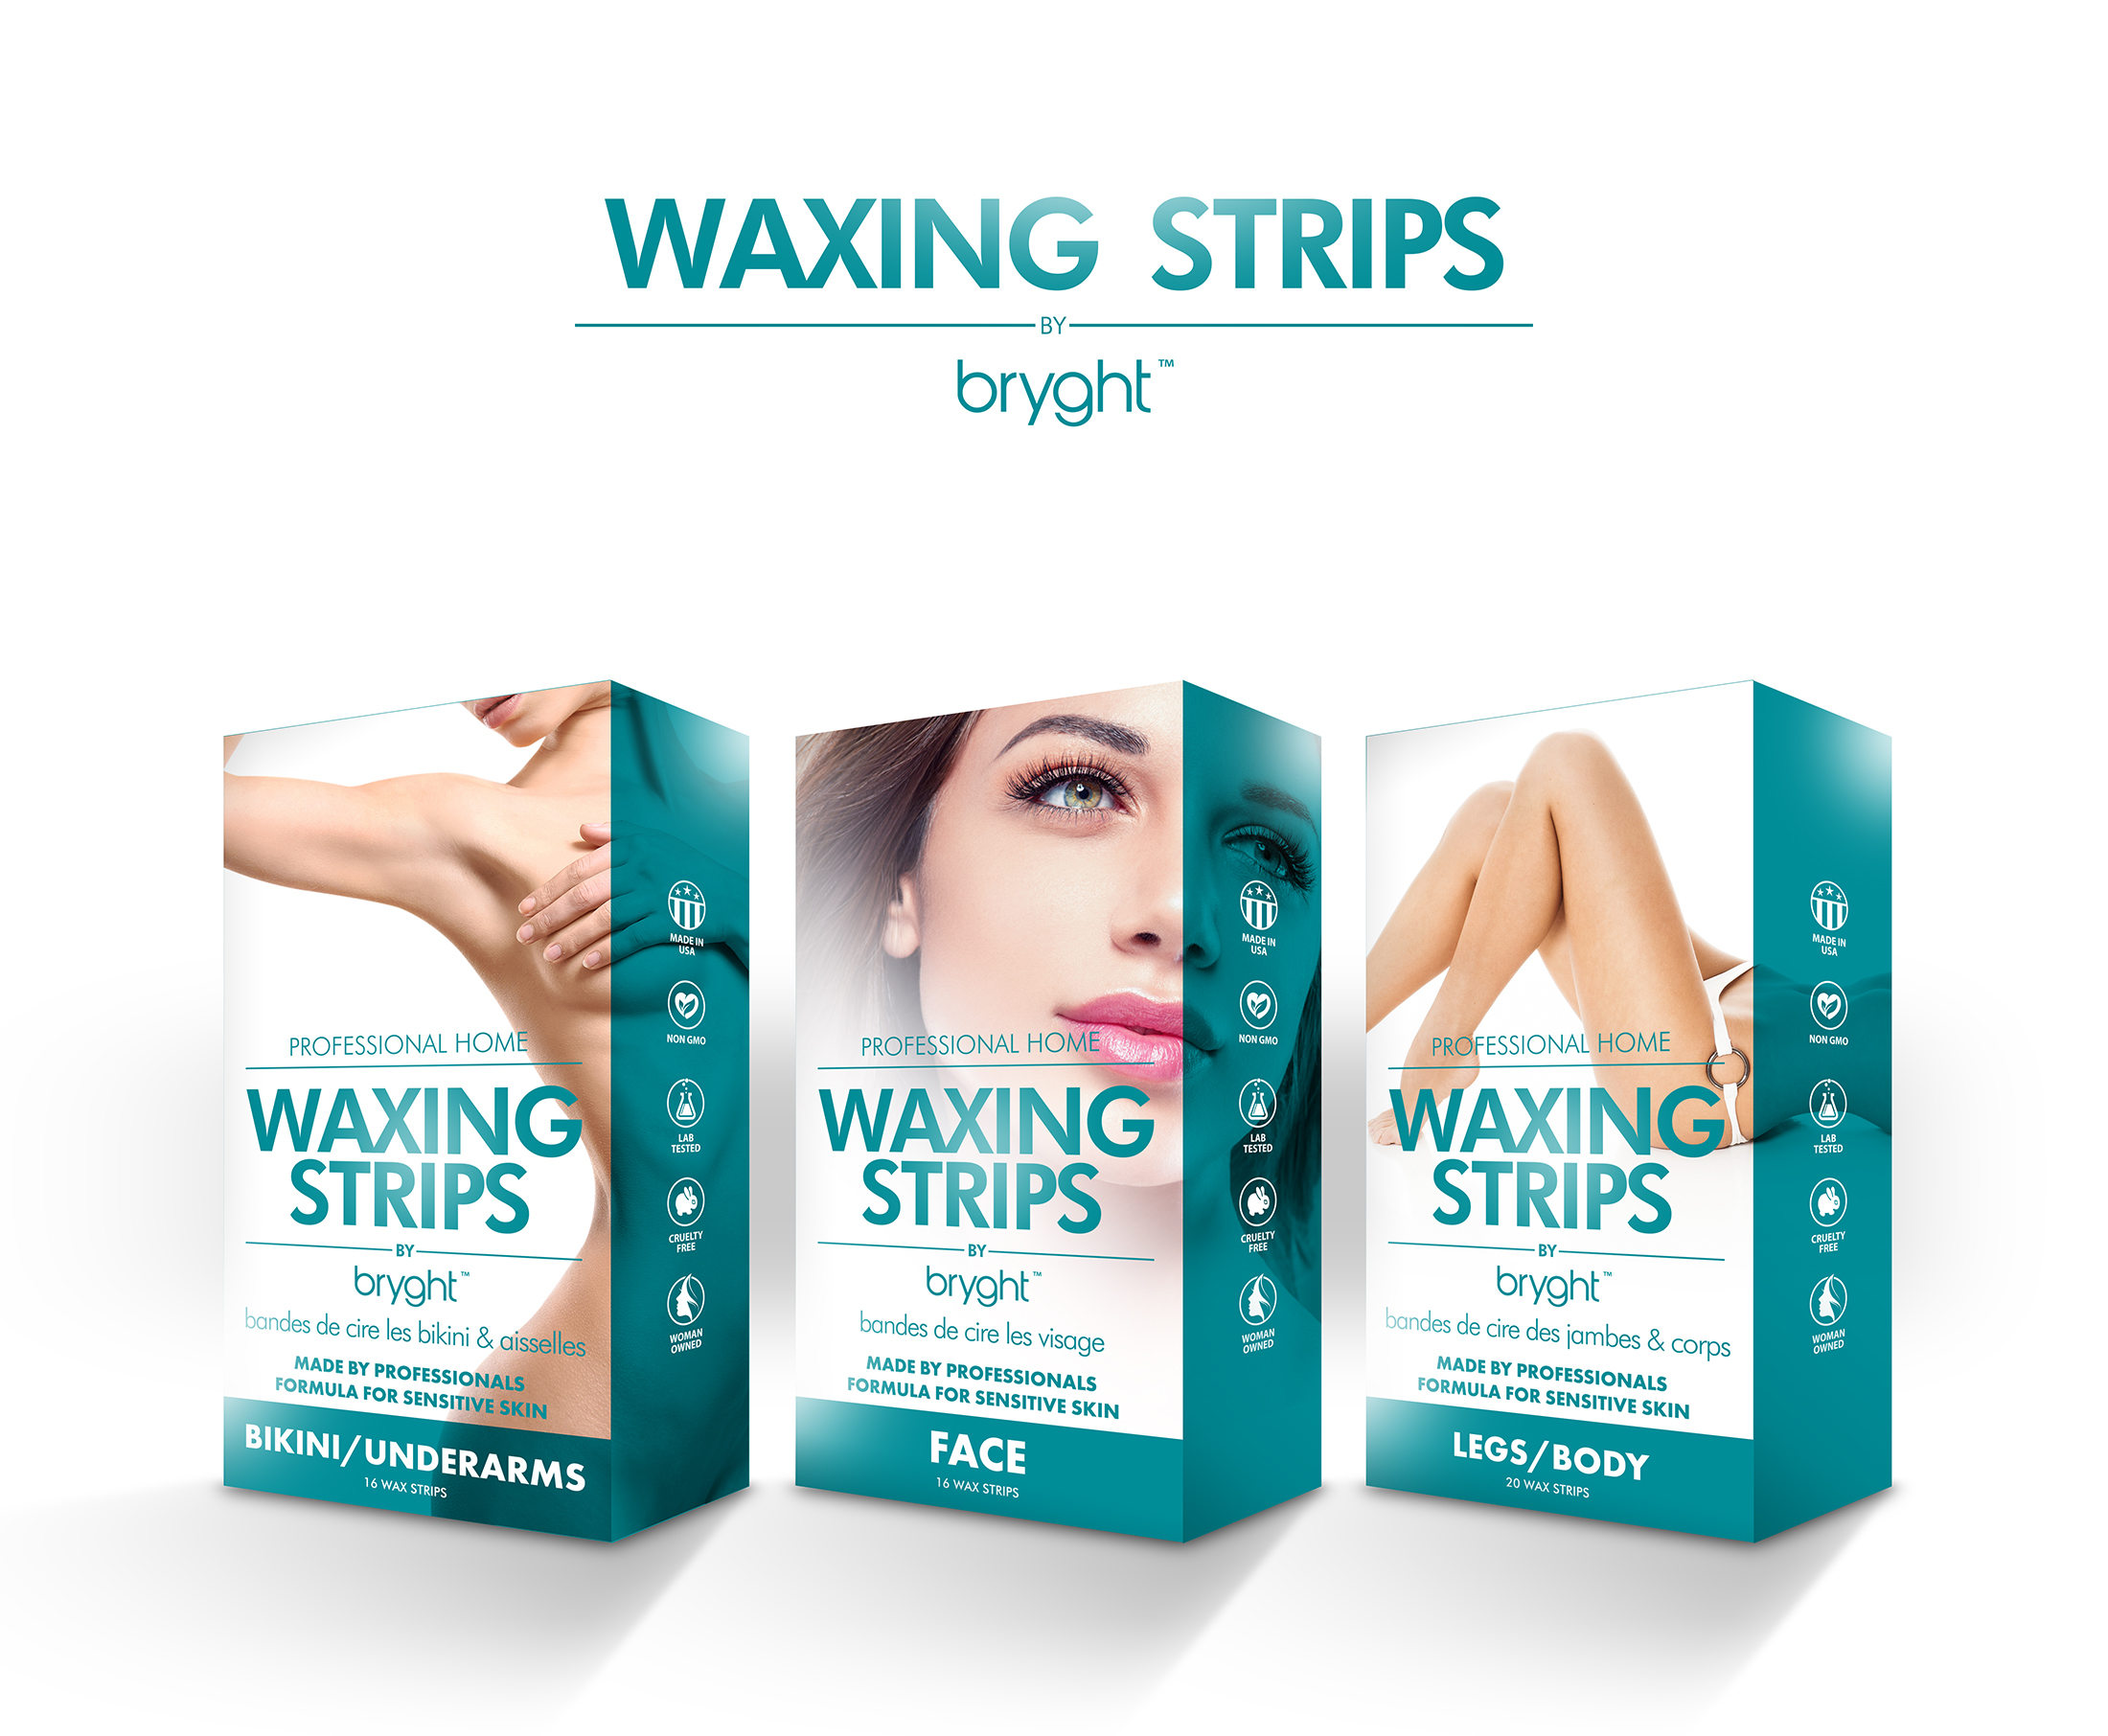 bryght waxing strips